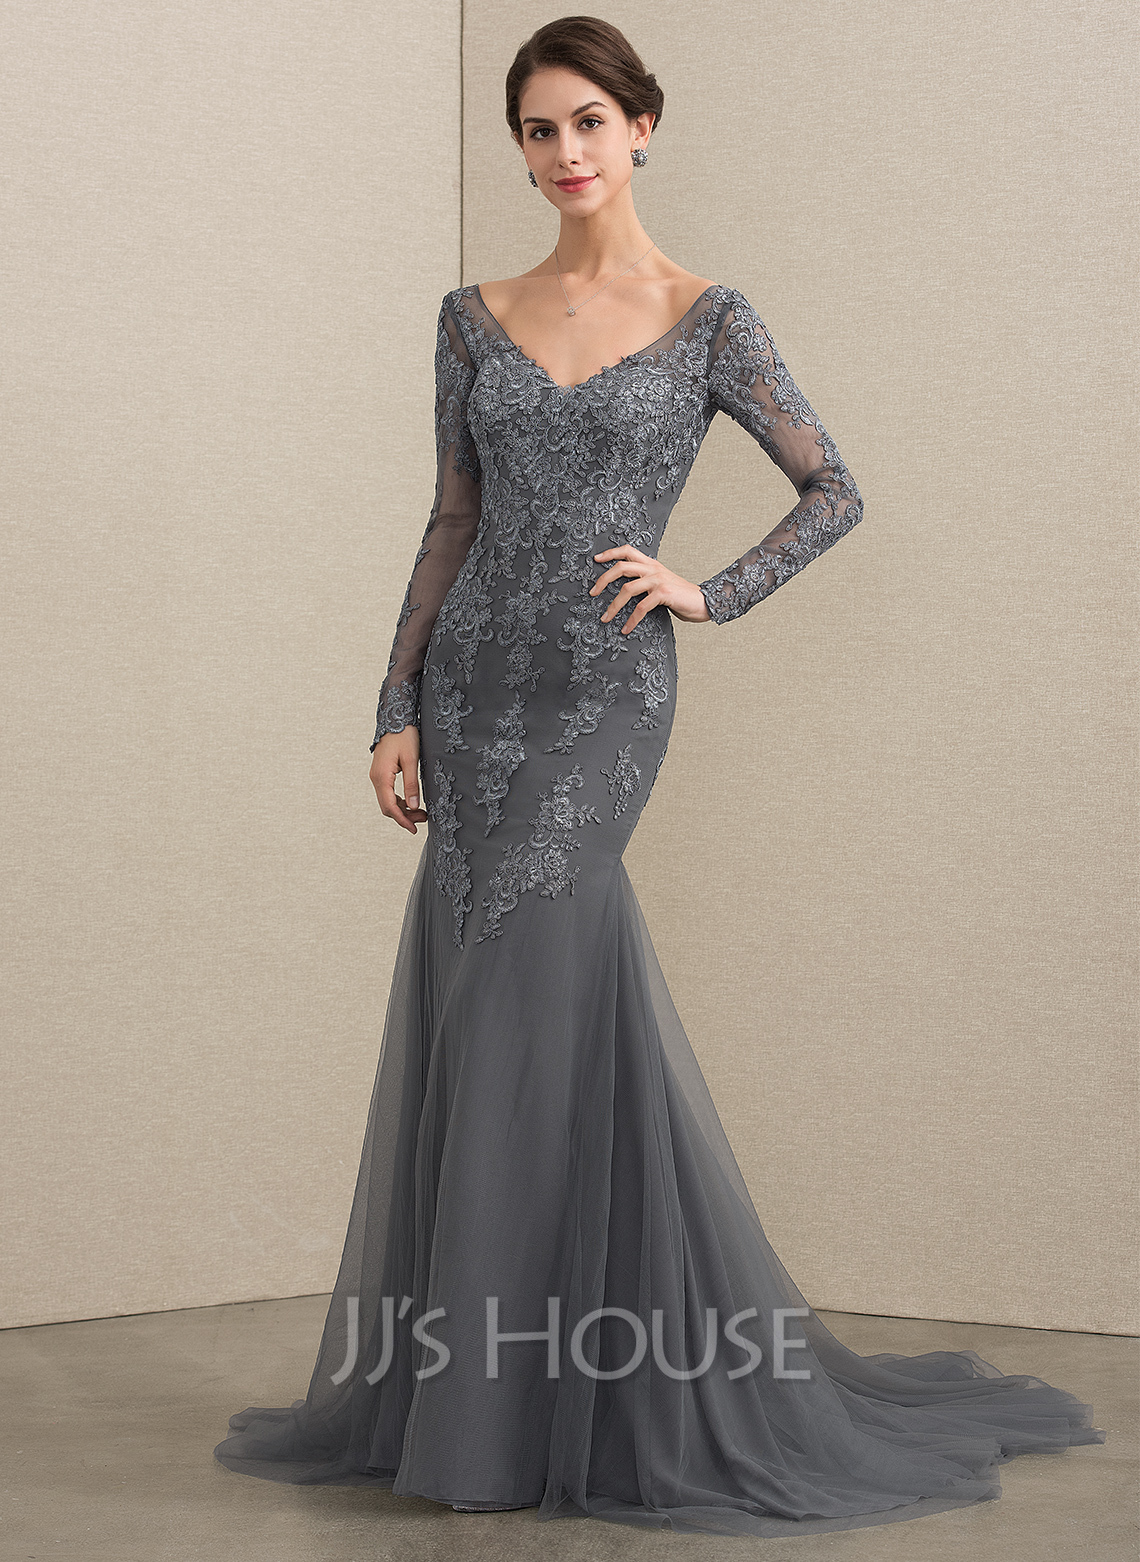 afeb0acf184 Trumpet Mermaid V-neck Court Train Tulle Lace Mother of the Bride Dress.  Loading zoom